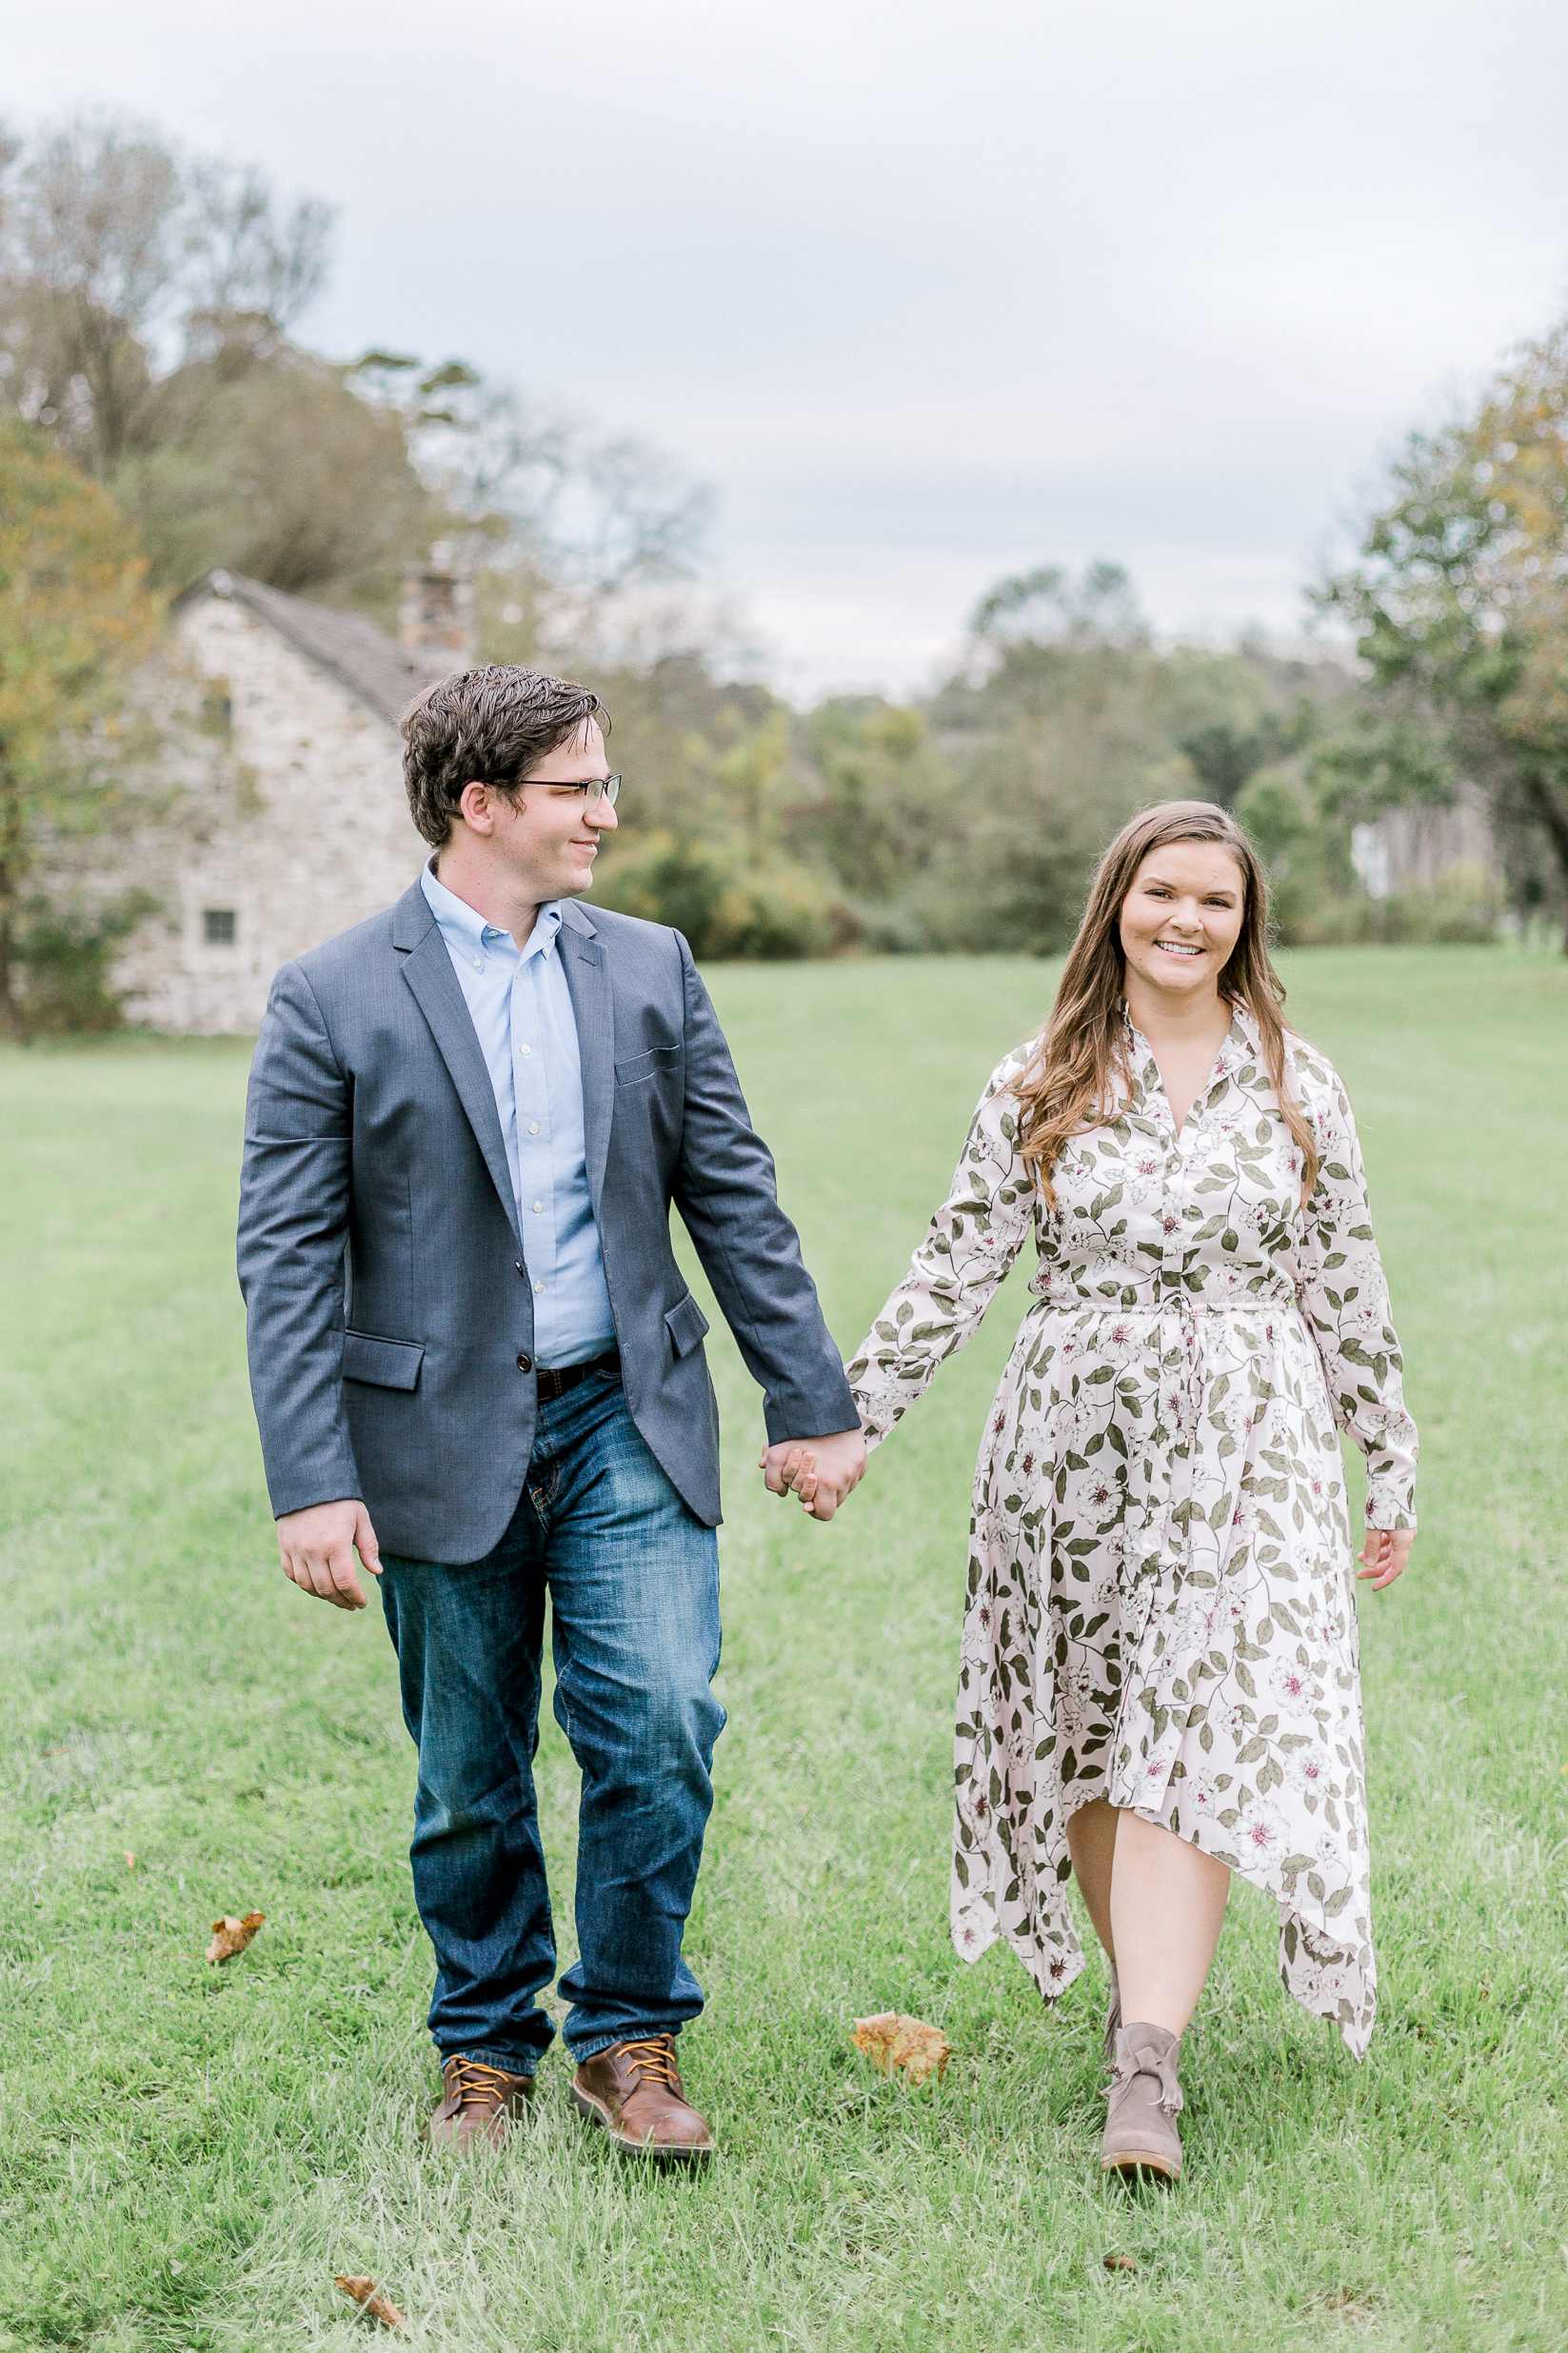 Lehigh valley Fish hatchery fall Engagement Session wedding and lifestyle photographer Lytle Photo Co (30 of 69).jpg